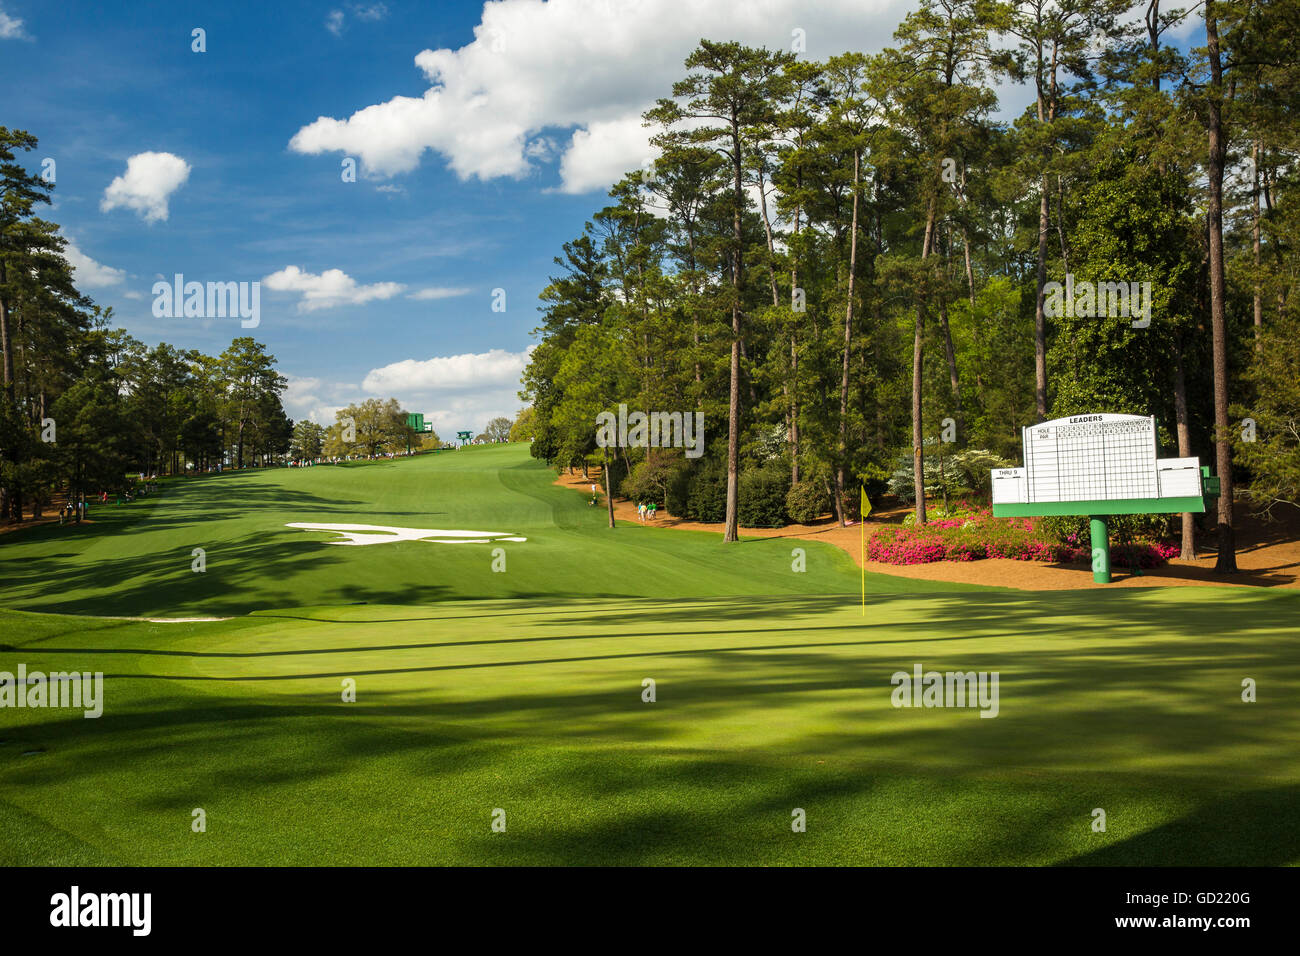 Looking behind the 10th green at Augusta National Golf Club during the US Masters, Augusta, Georgia, United States - Stock Image